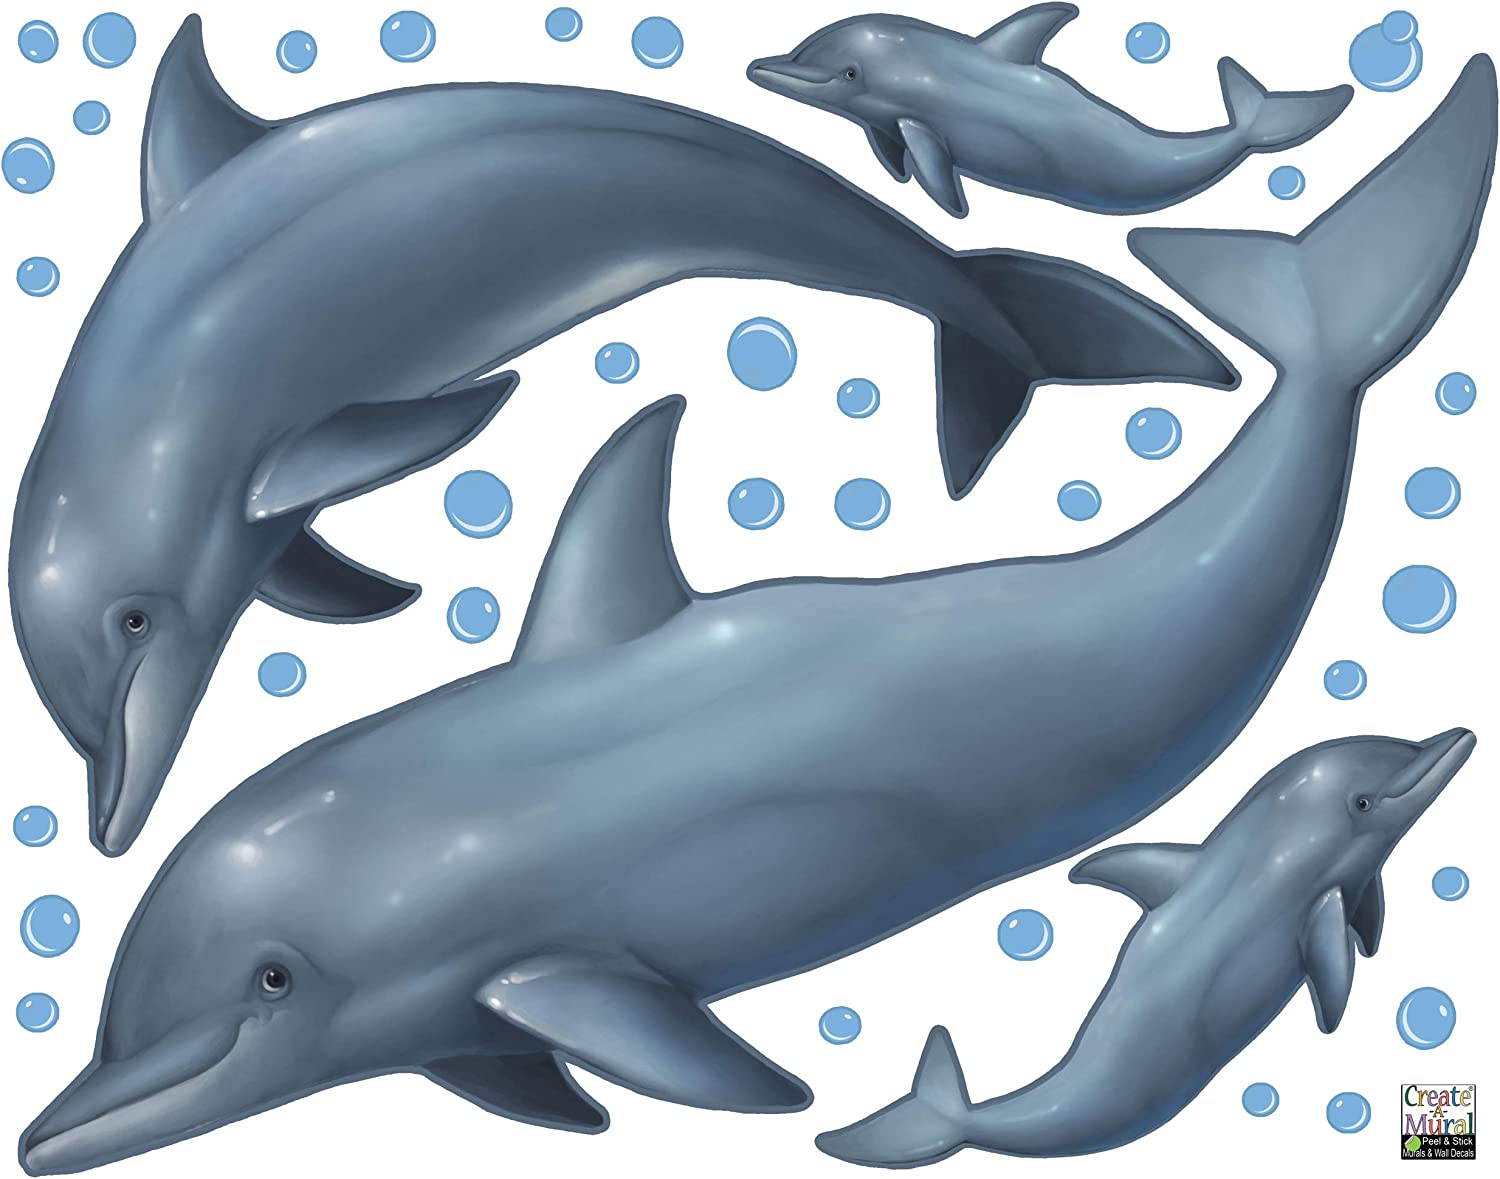 Create-A-Mural Dolphin Wall Decals ~Under The Sea Ocean Kids Room Decor Stickers, Removable Peel and Stick Art